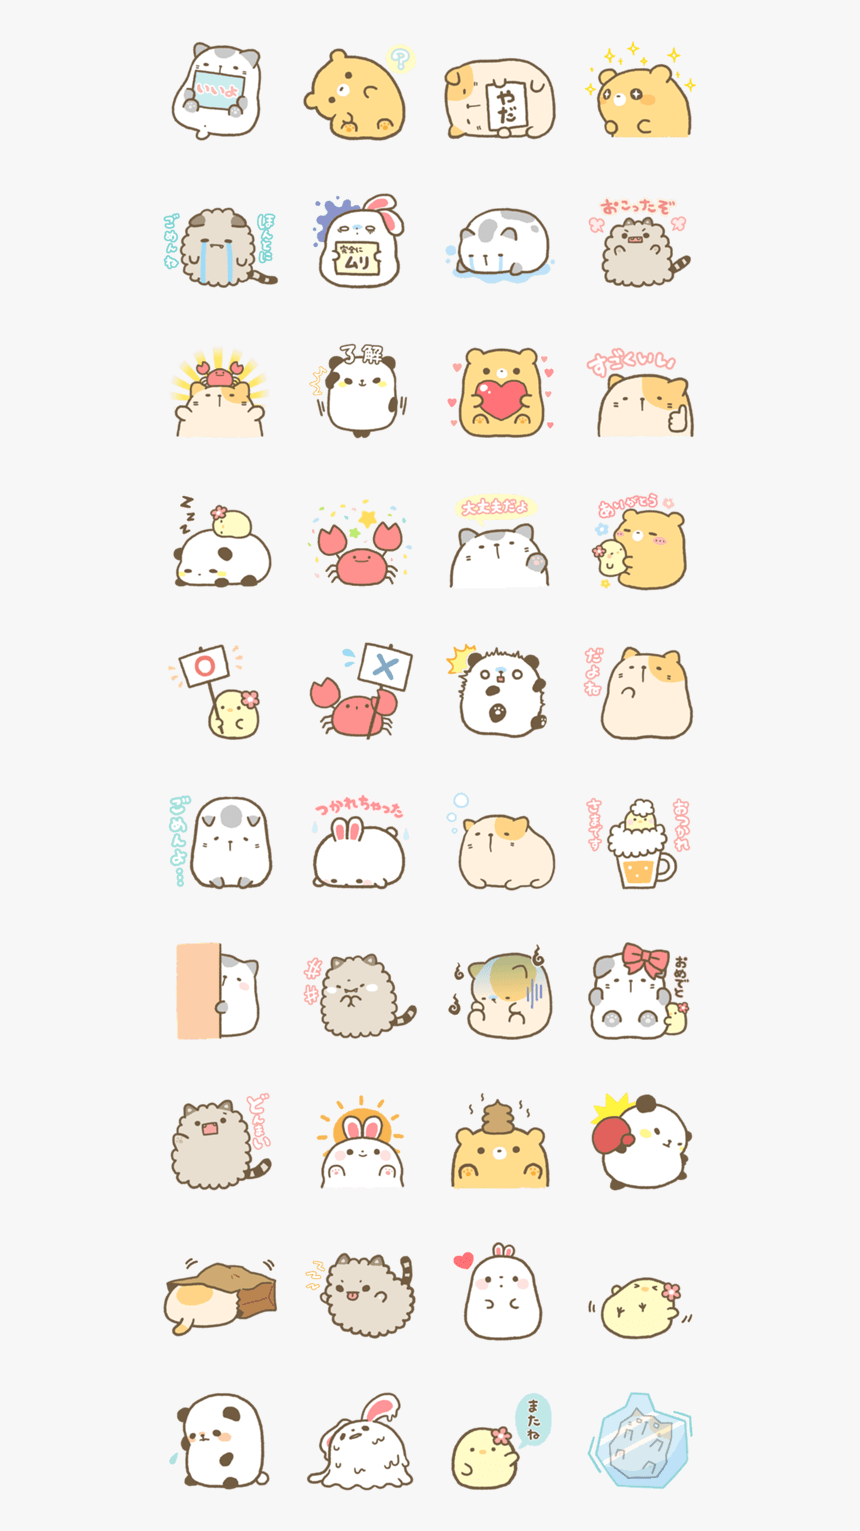 Kawaii Chibi Cute Animal Drawing, HD Png Download, Free Download